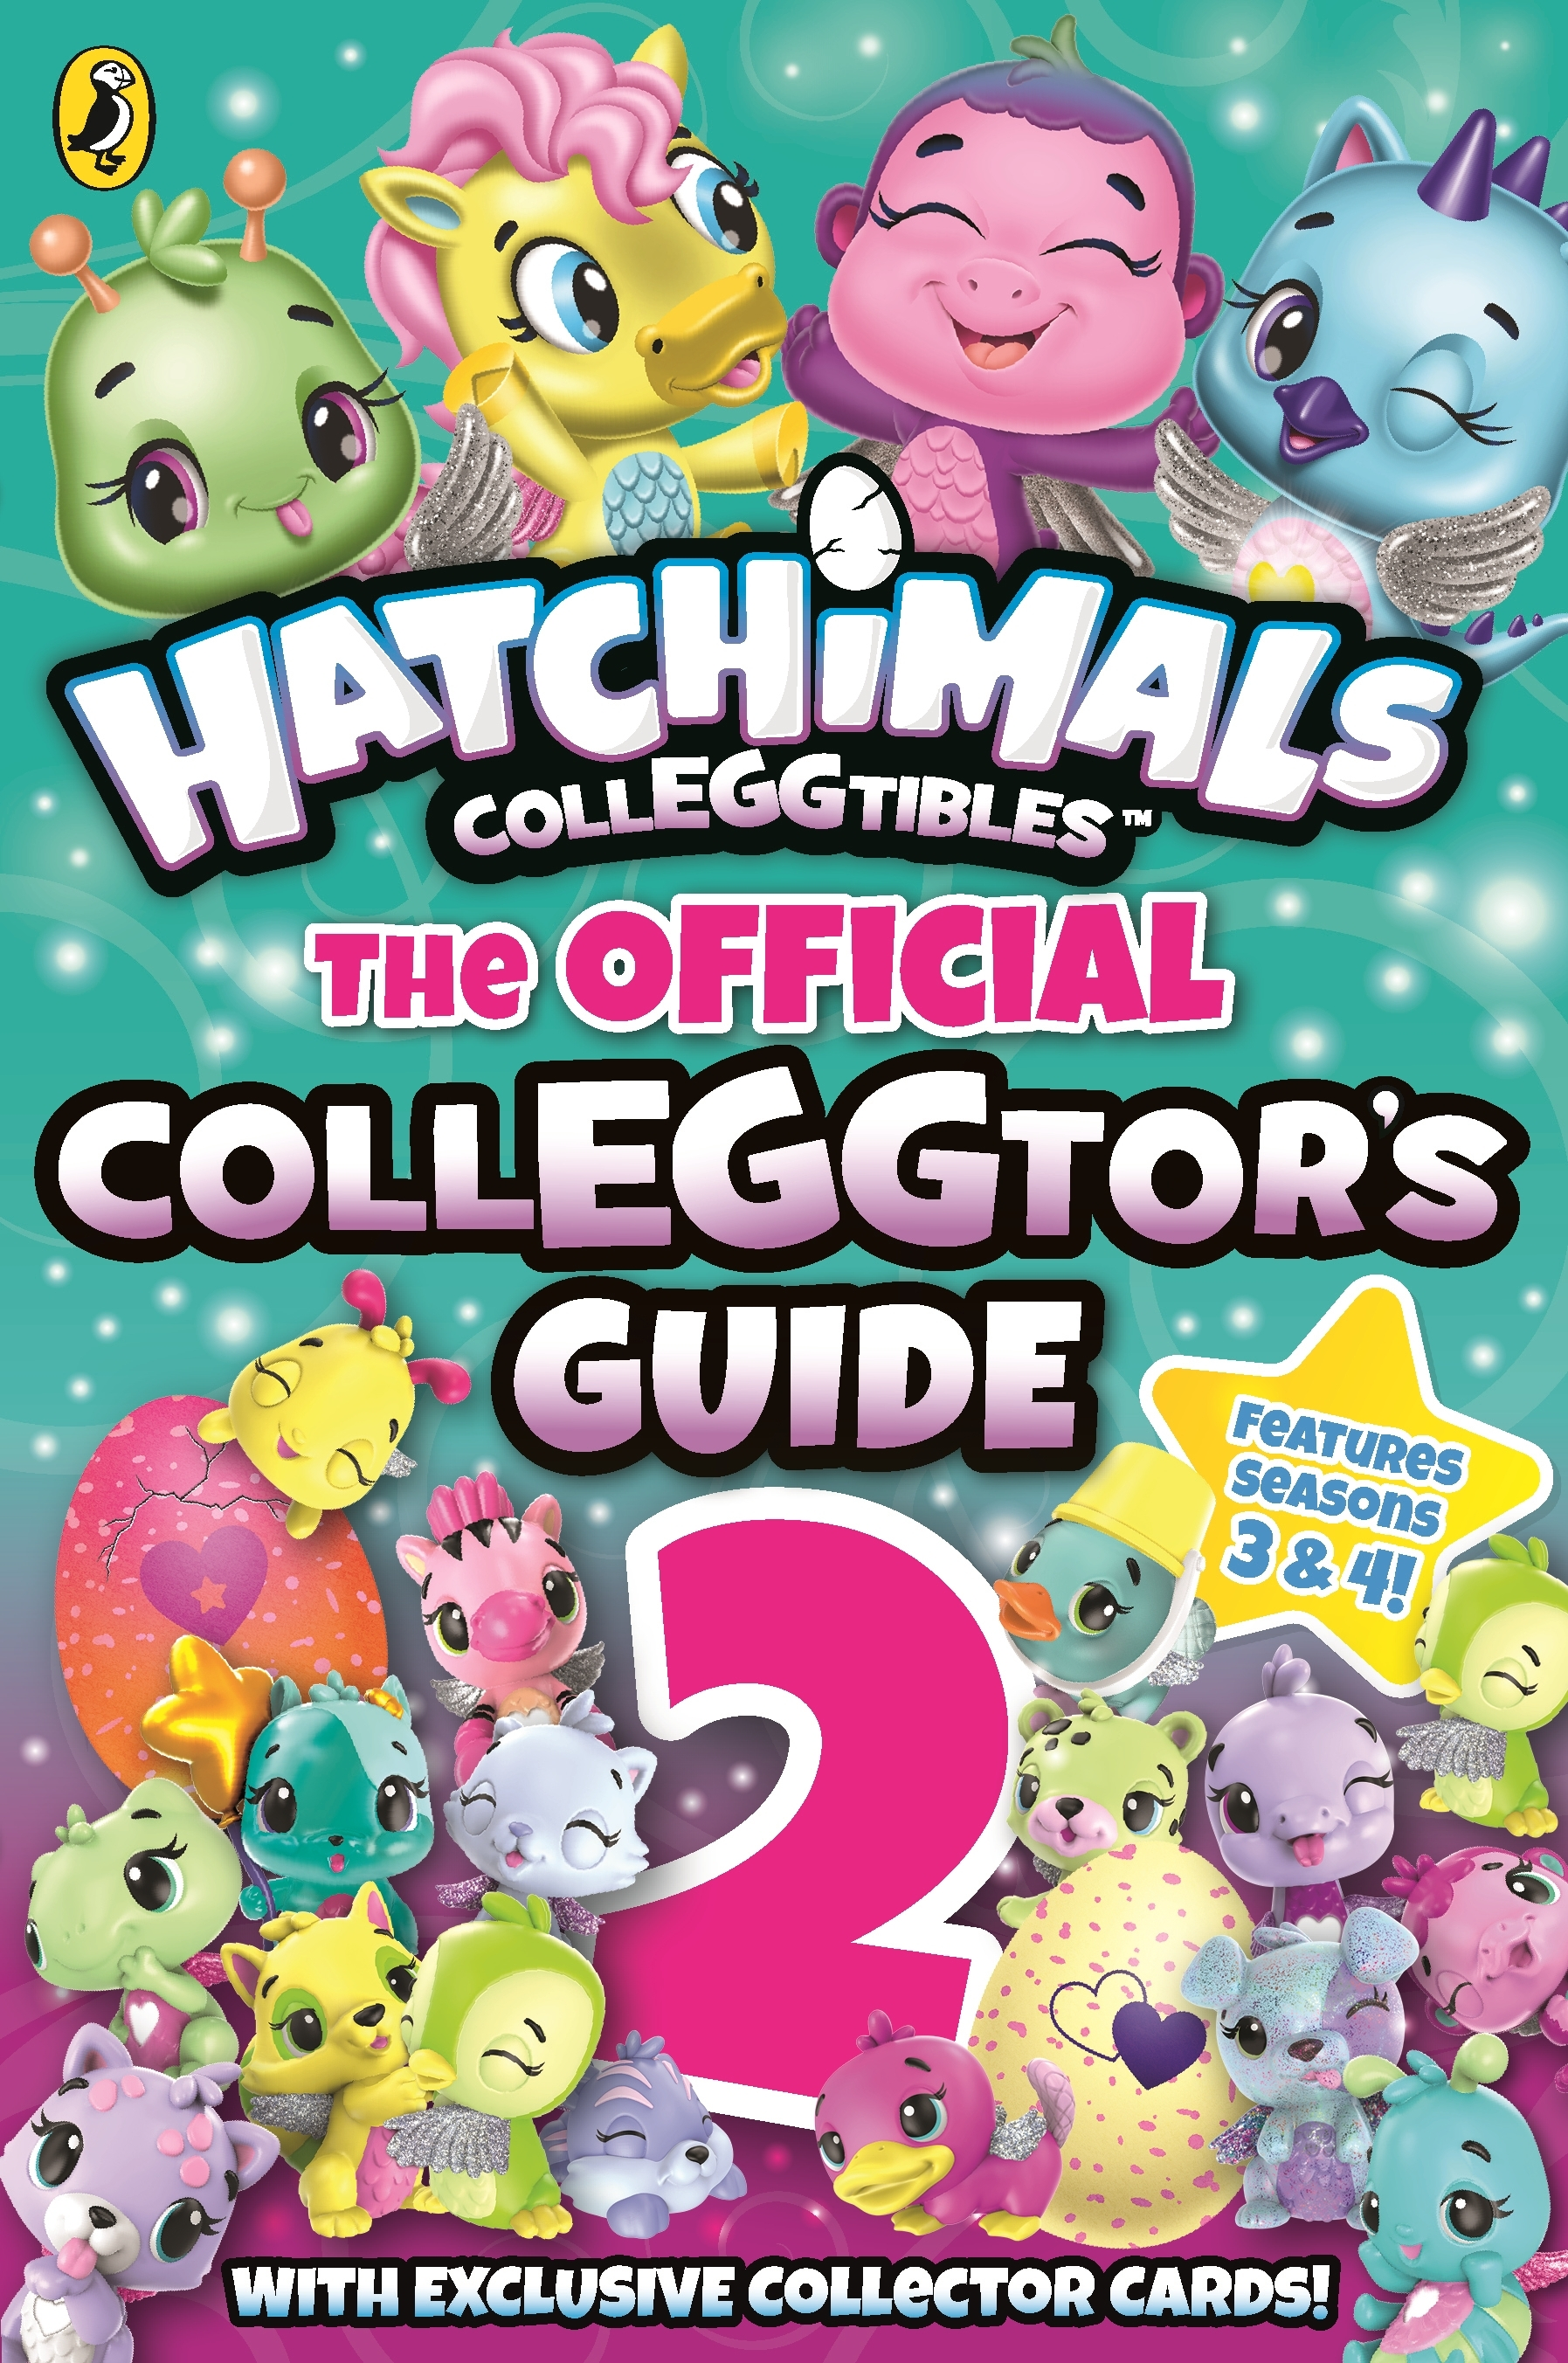 HatchimalsThe Official Colleggtor's Guide 2